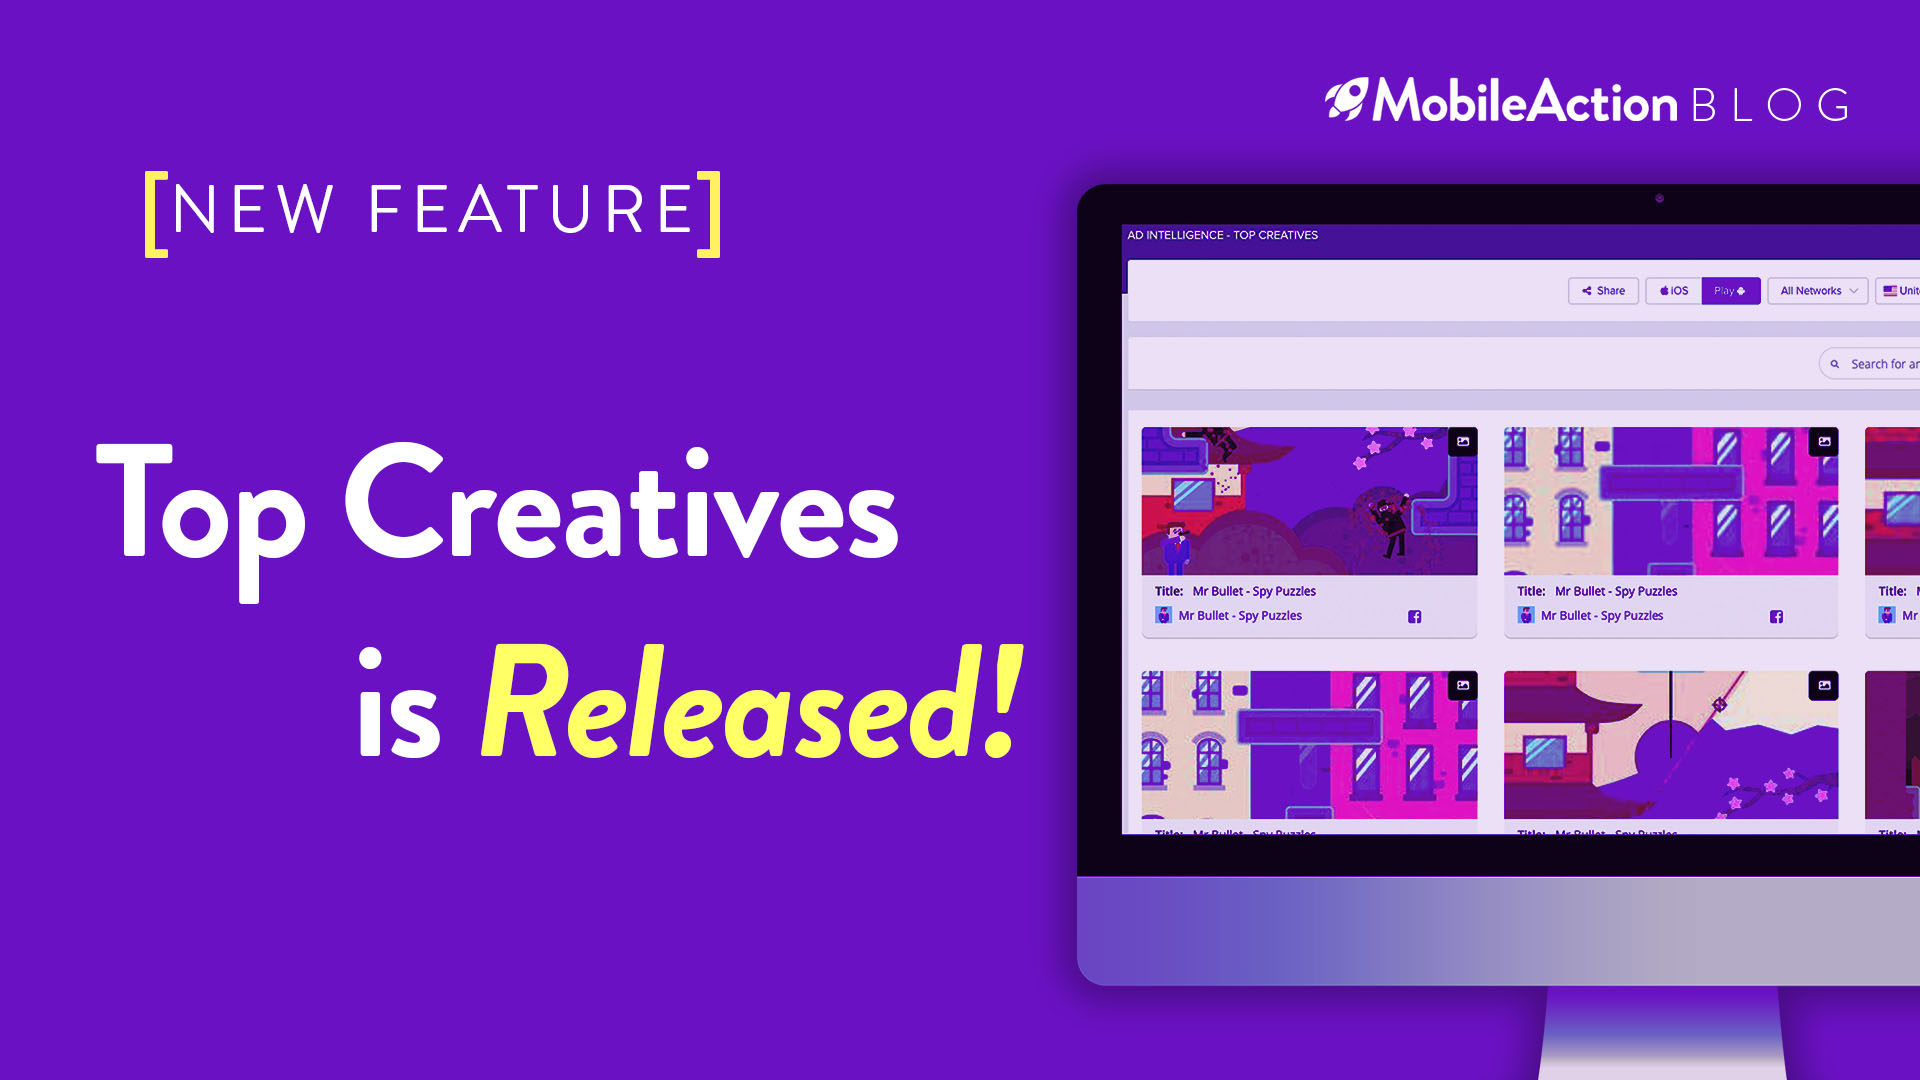 image featuring Top Creatives feature of MobileAction